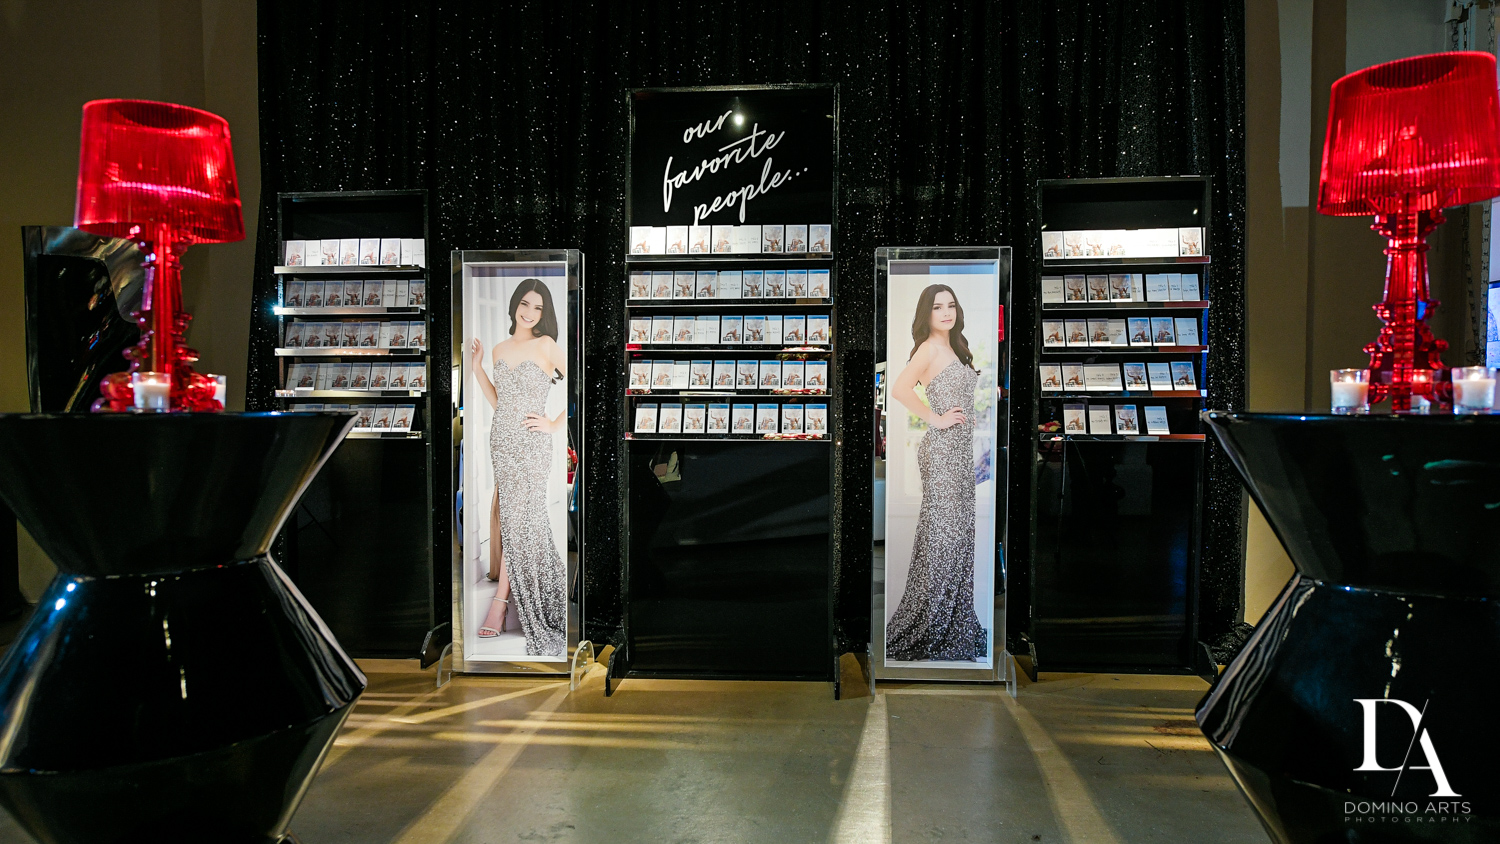 Fashion Theme Bat Mitzvah at Gallery of Amazing Things by Domino Arts Photography